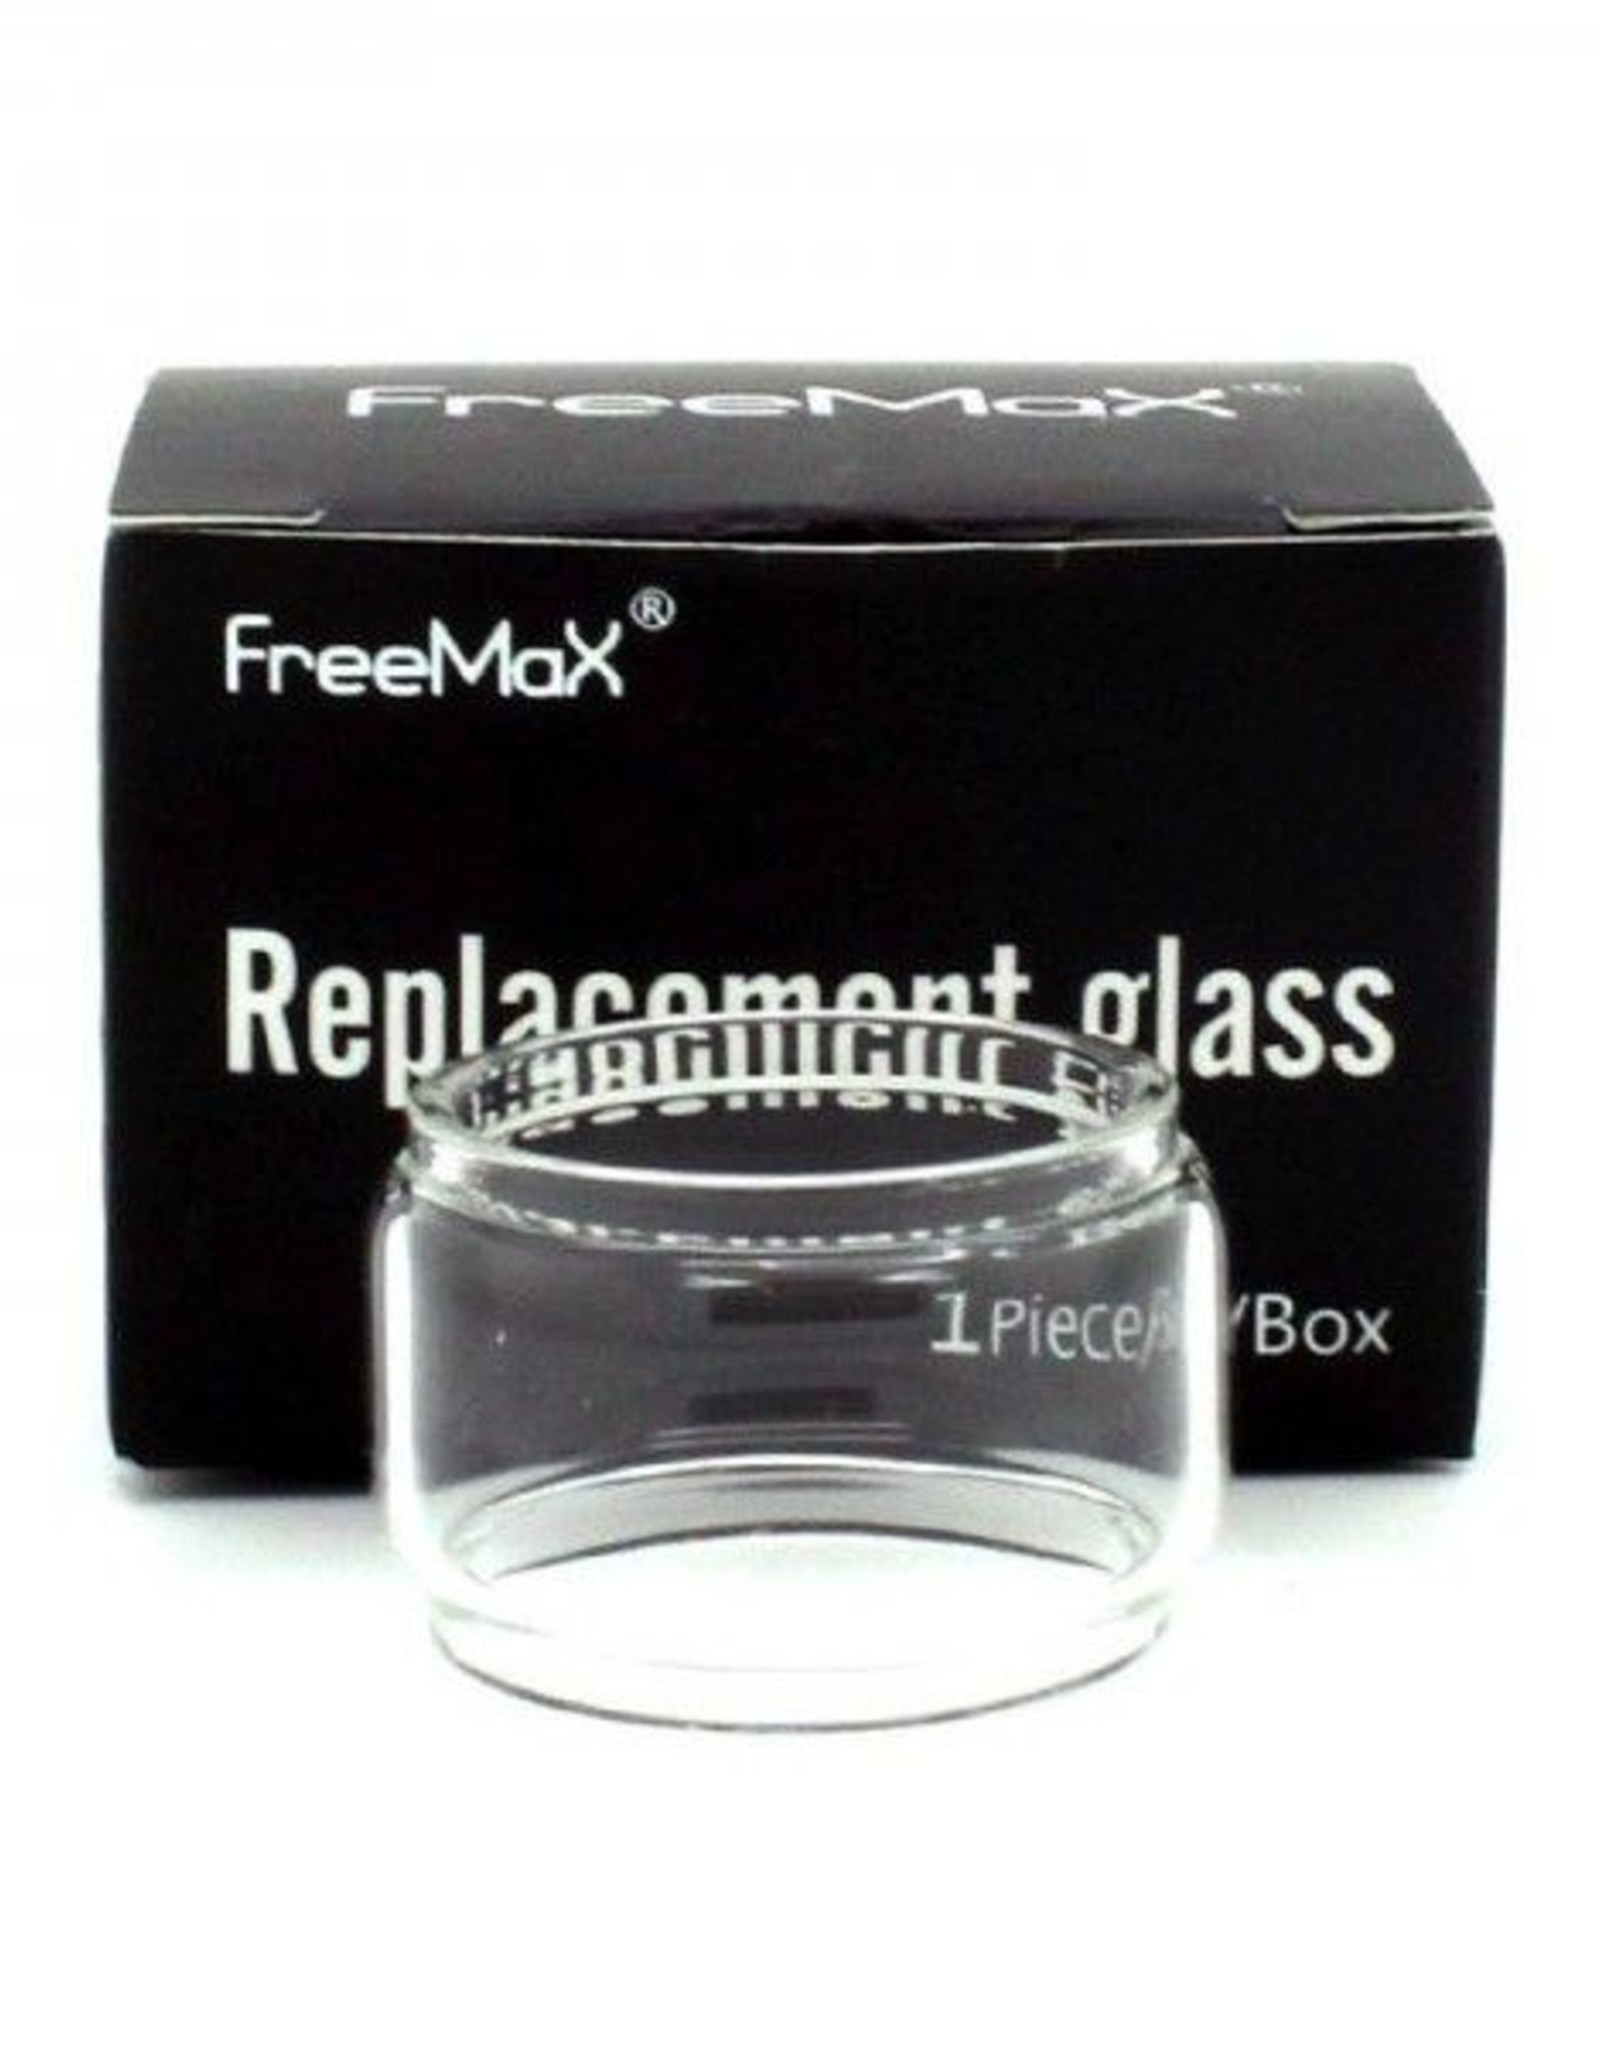 Freemax Freemax Fireluke Replacement Glass 5ml